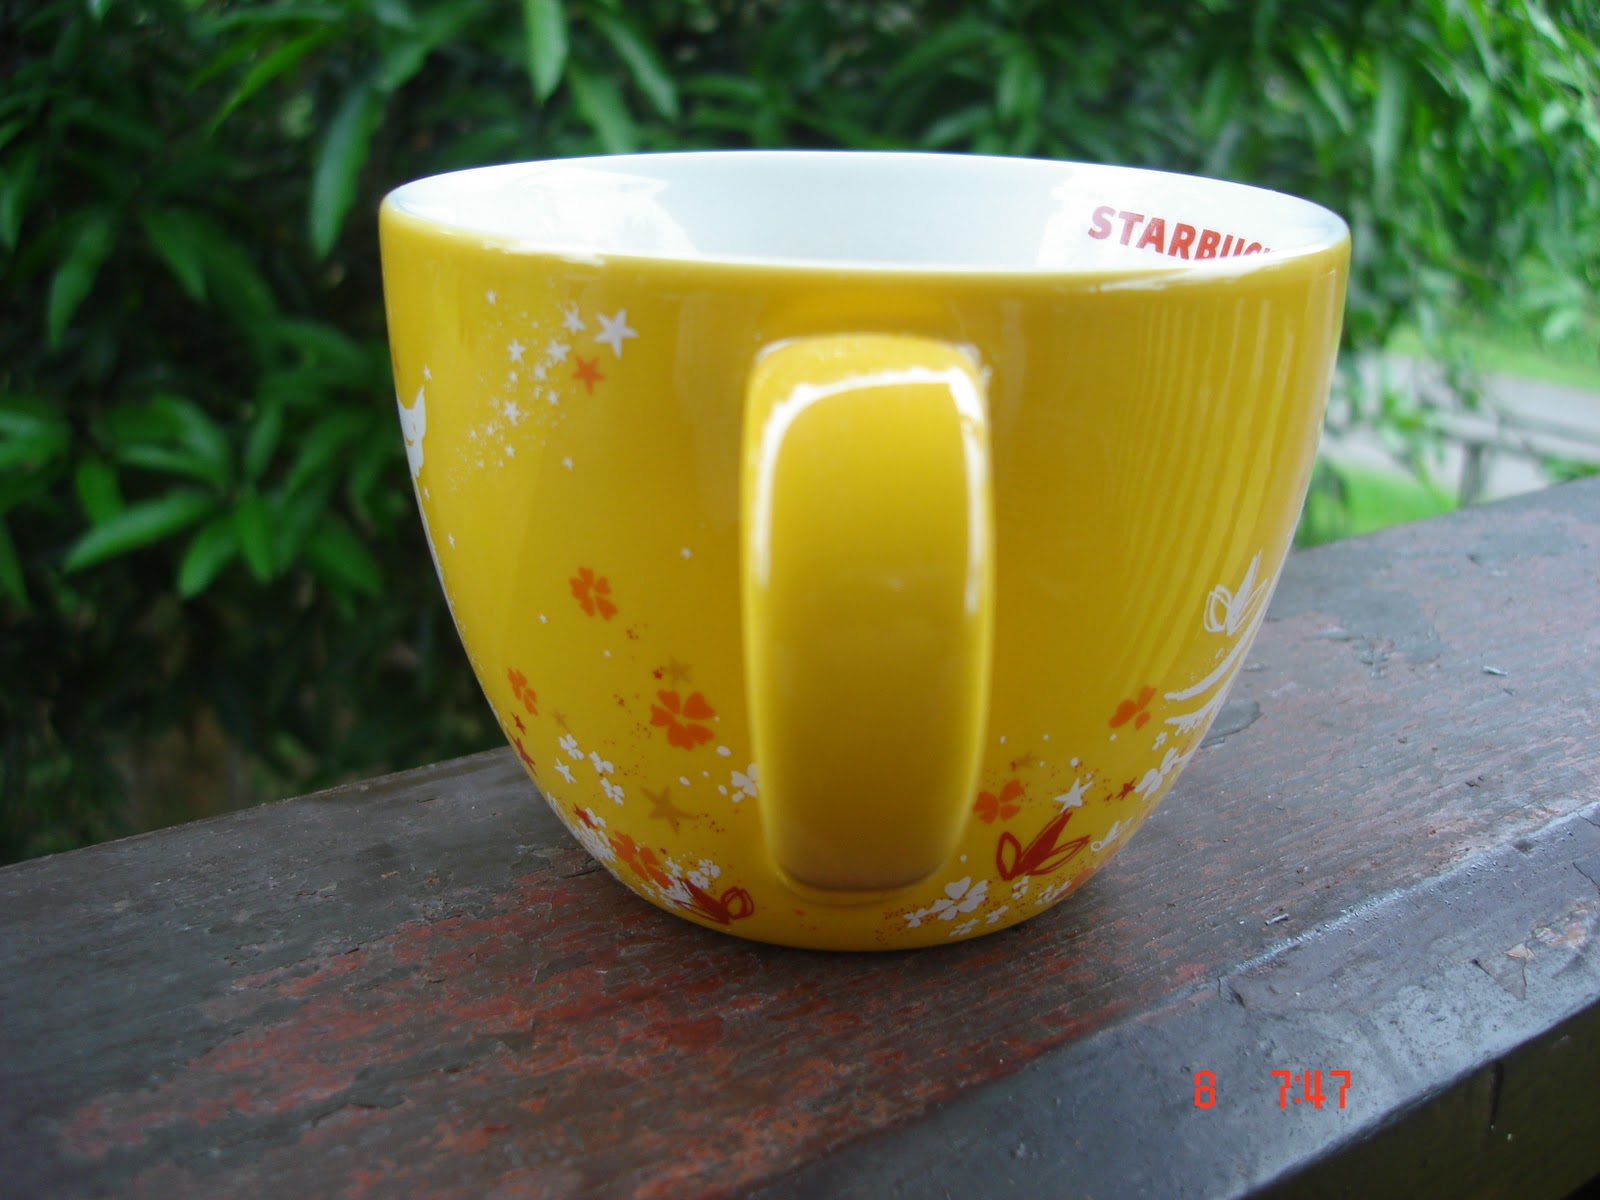 a cup a day: 2008 starbucks moon cake festival yellow mug